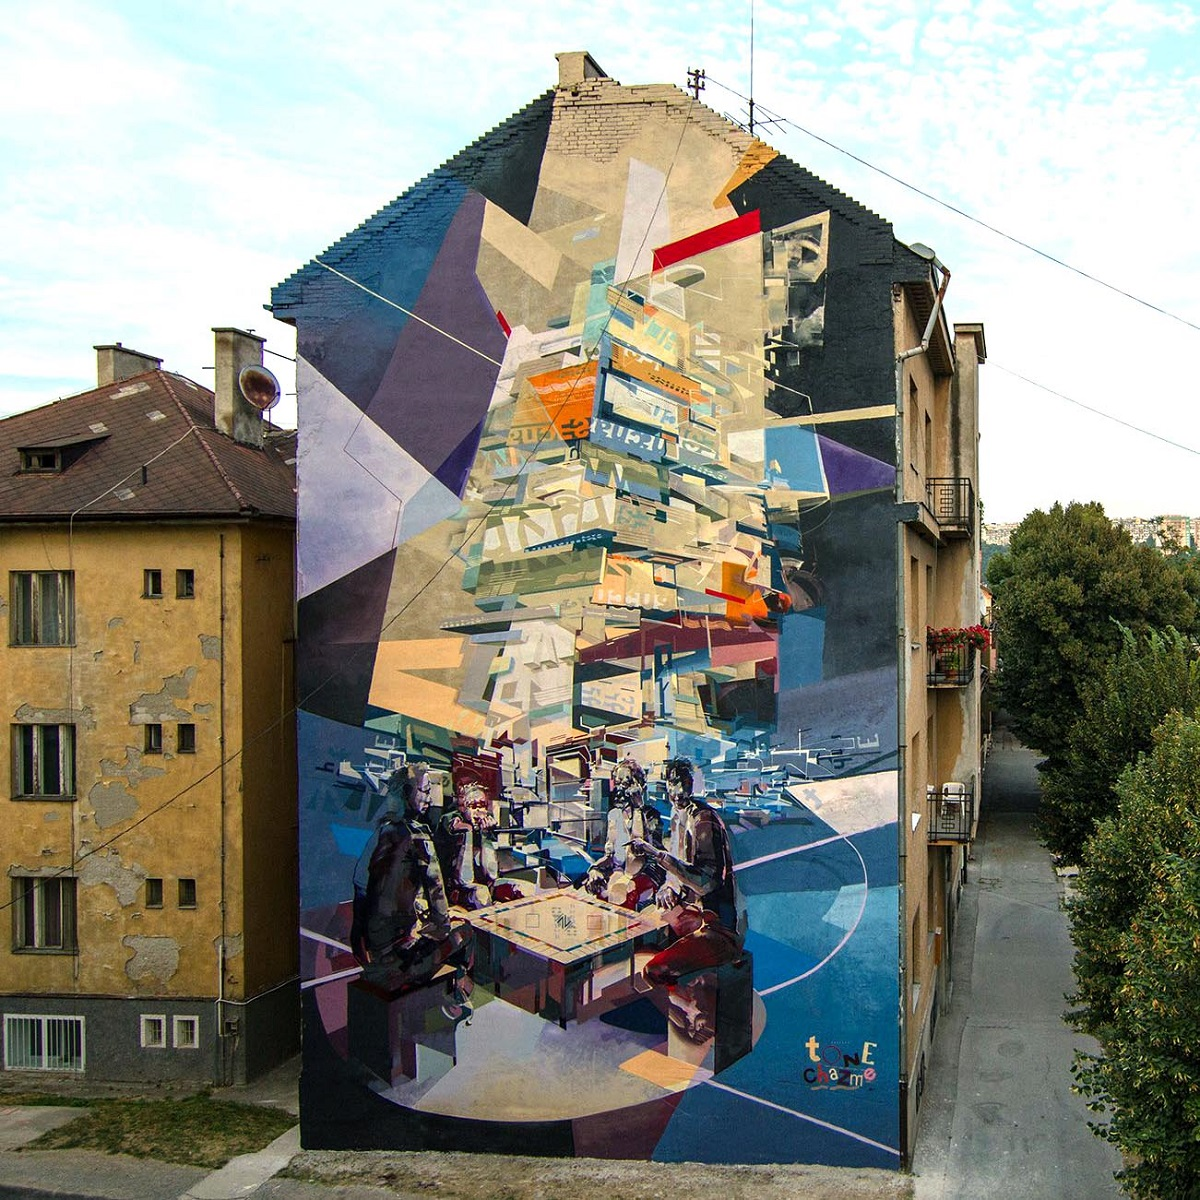 robert-proch-chazme-new-mural-in-kosice-slovakia-08